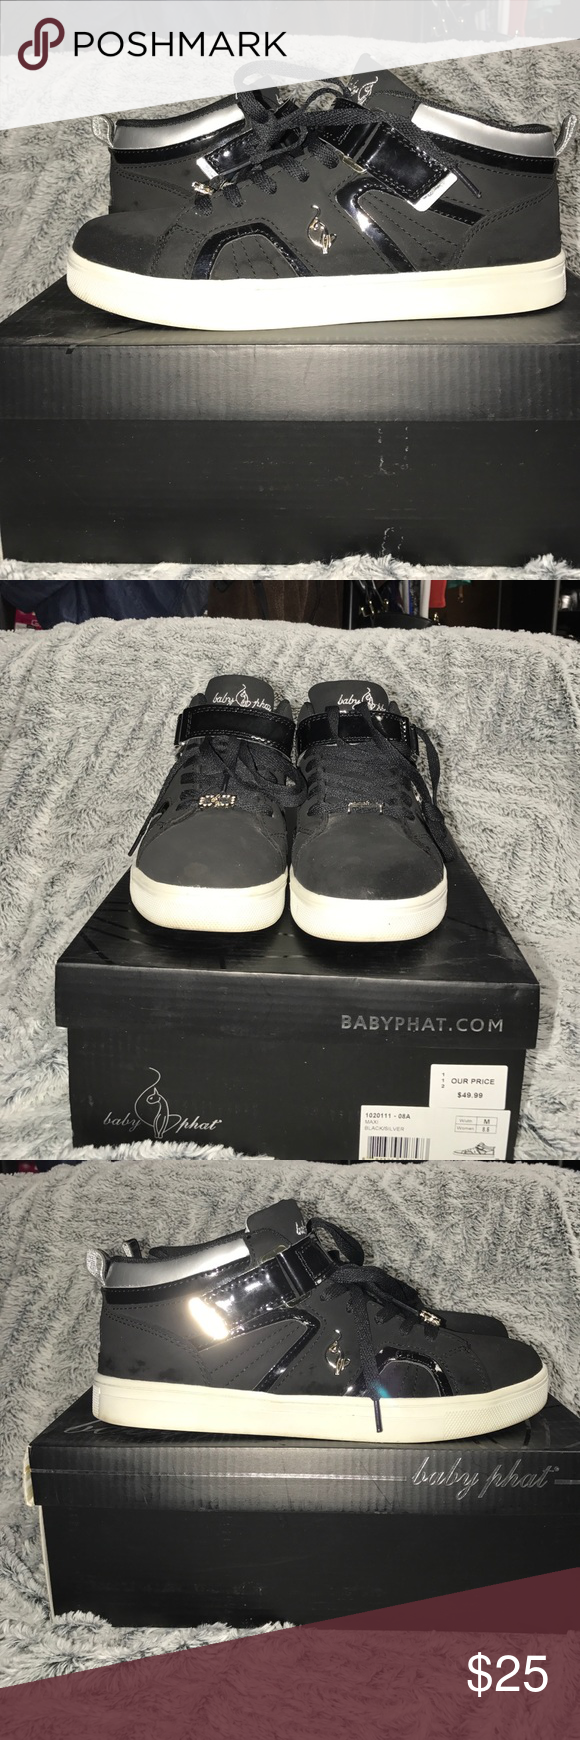 Black and silver baby phat sneakers Excellent condition only worn a few times. Baby Phat Shoes Sneakers